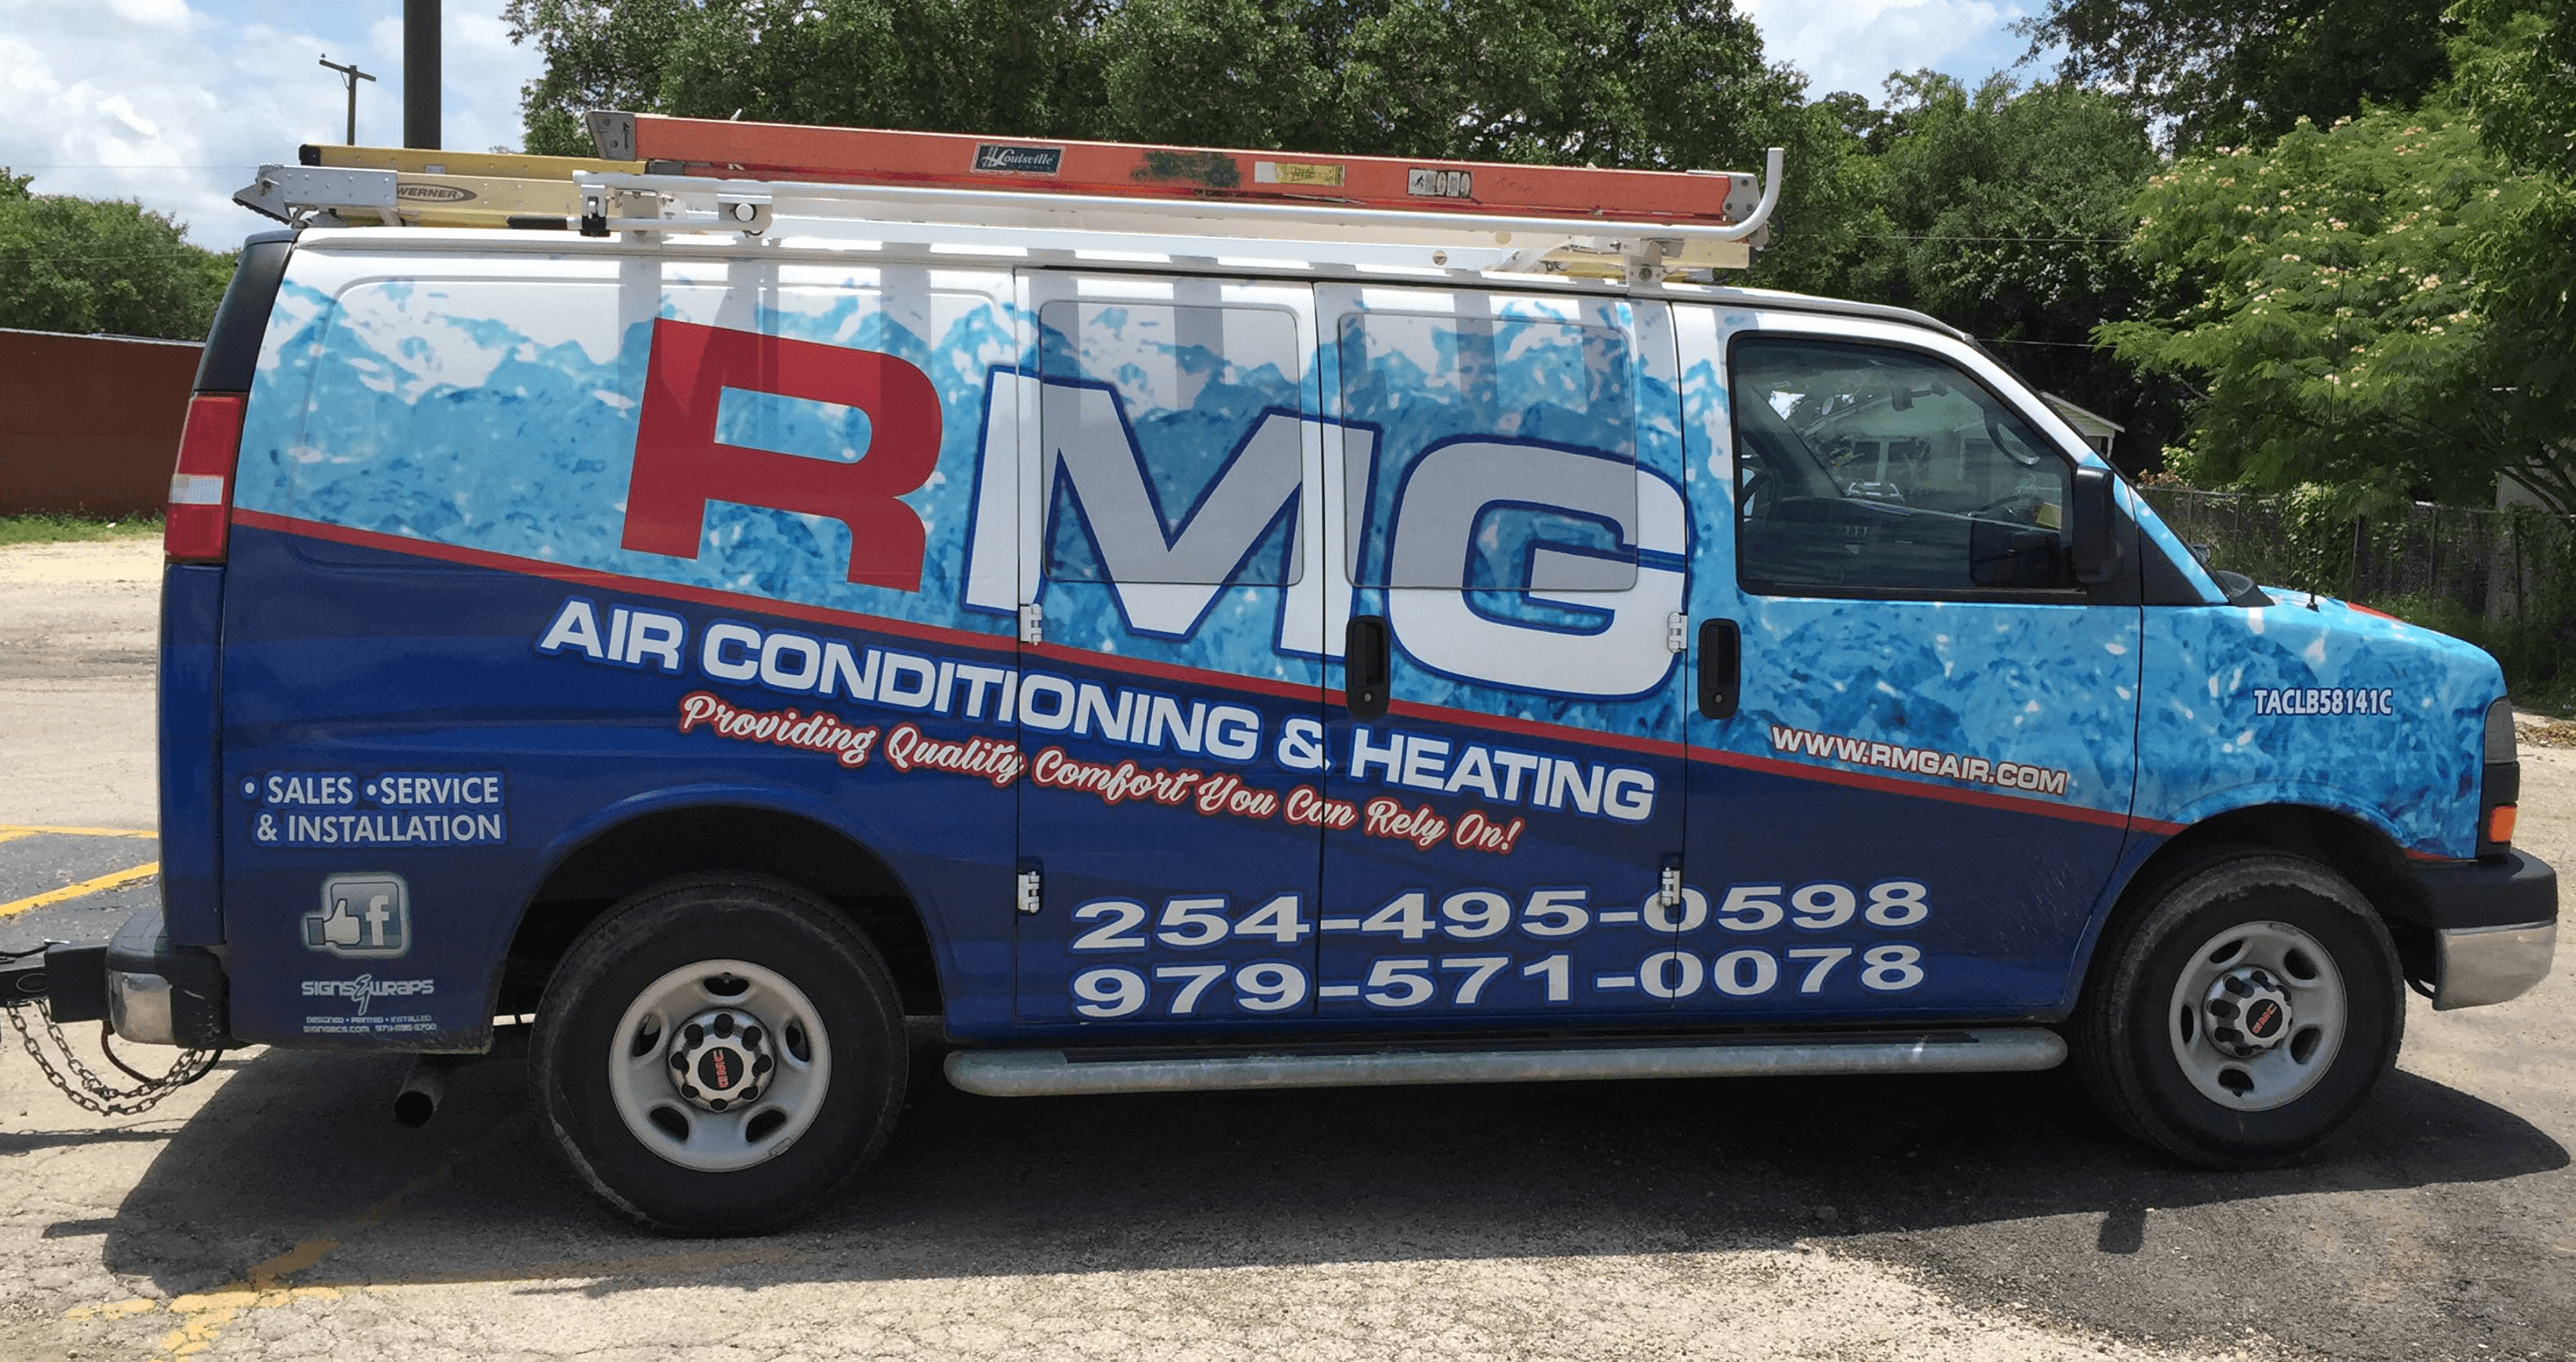 rmg air conditioning & heating vehicle in red, white and blue colors